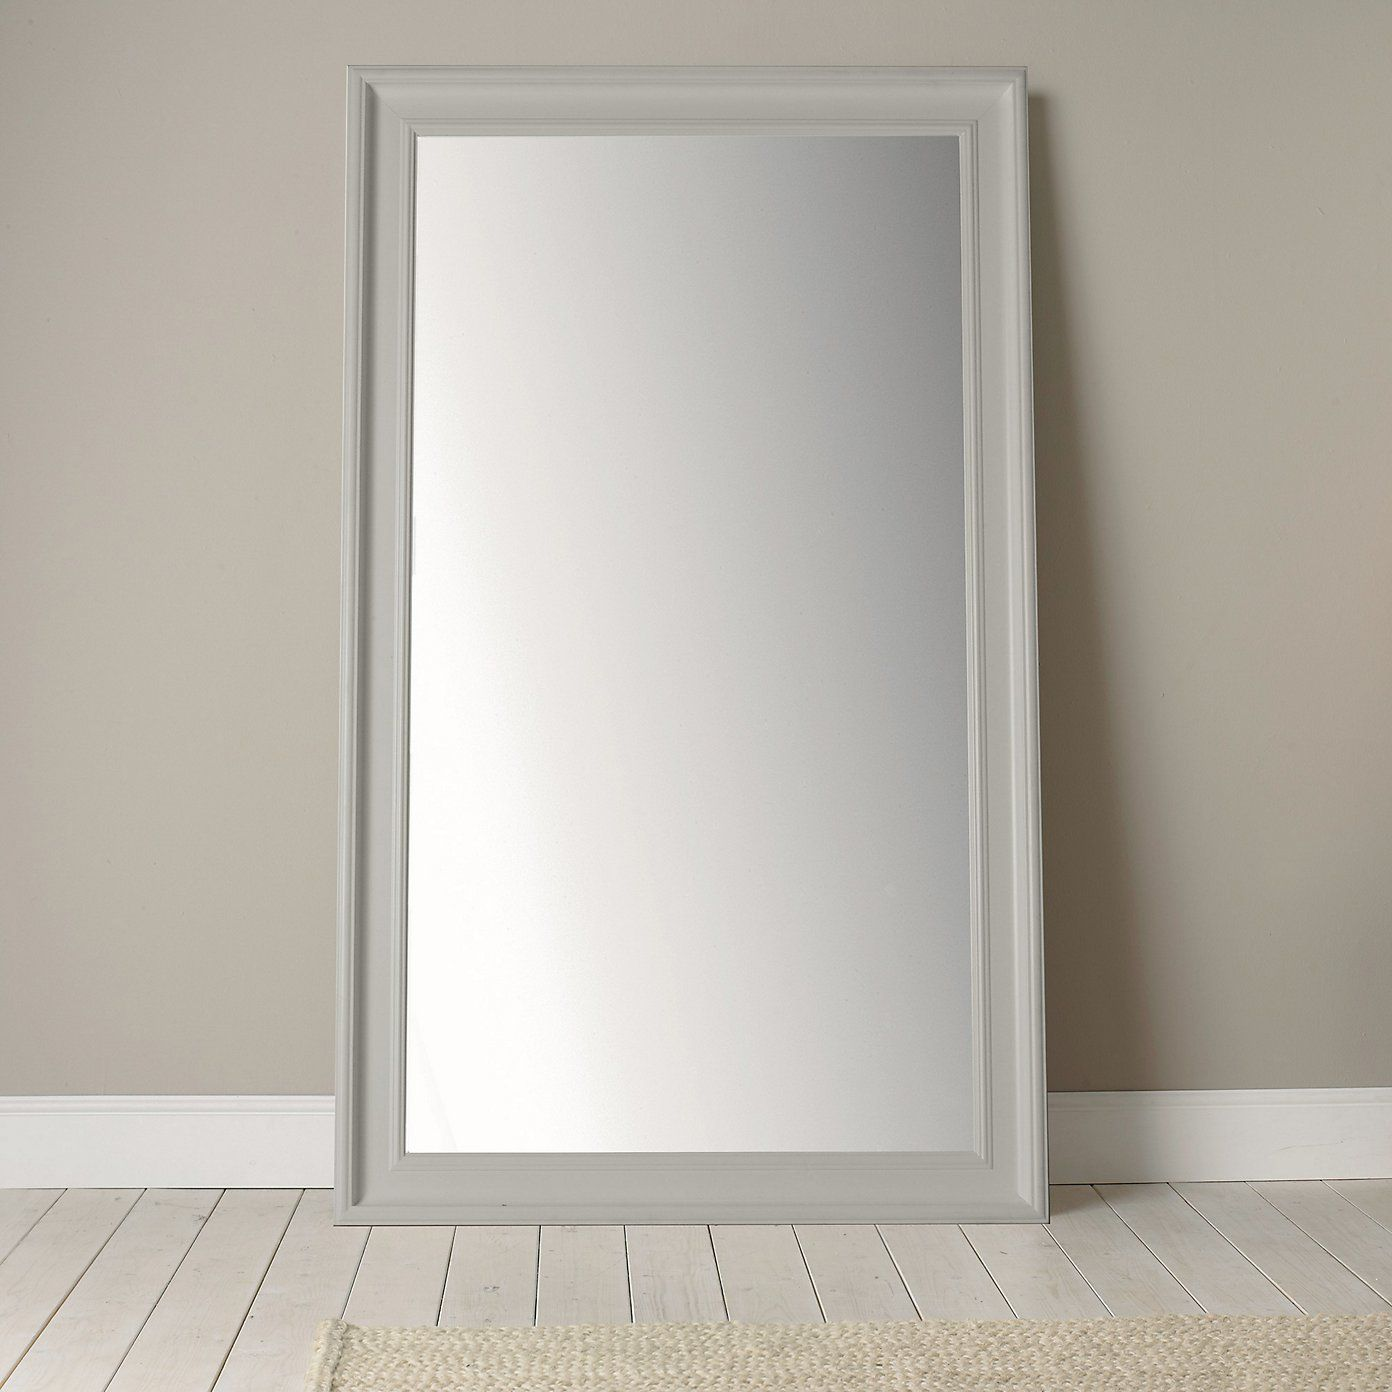 Portland Wide Full Length Mirror Grey From The White Company White Bedroom Furniture Grey Walls Grey Wall Mirrors Wide Full Length Mirror